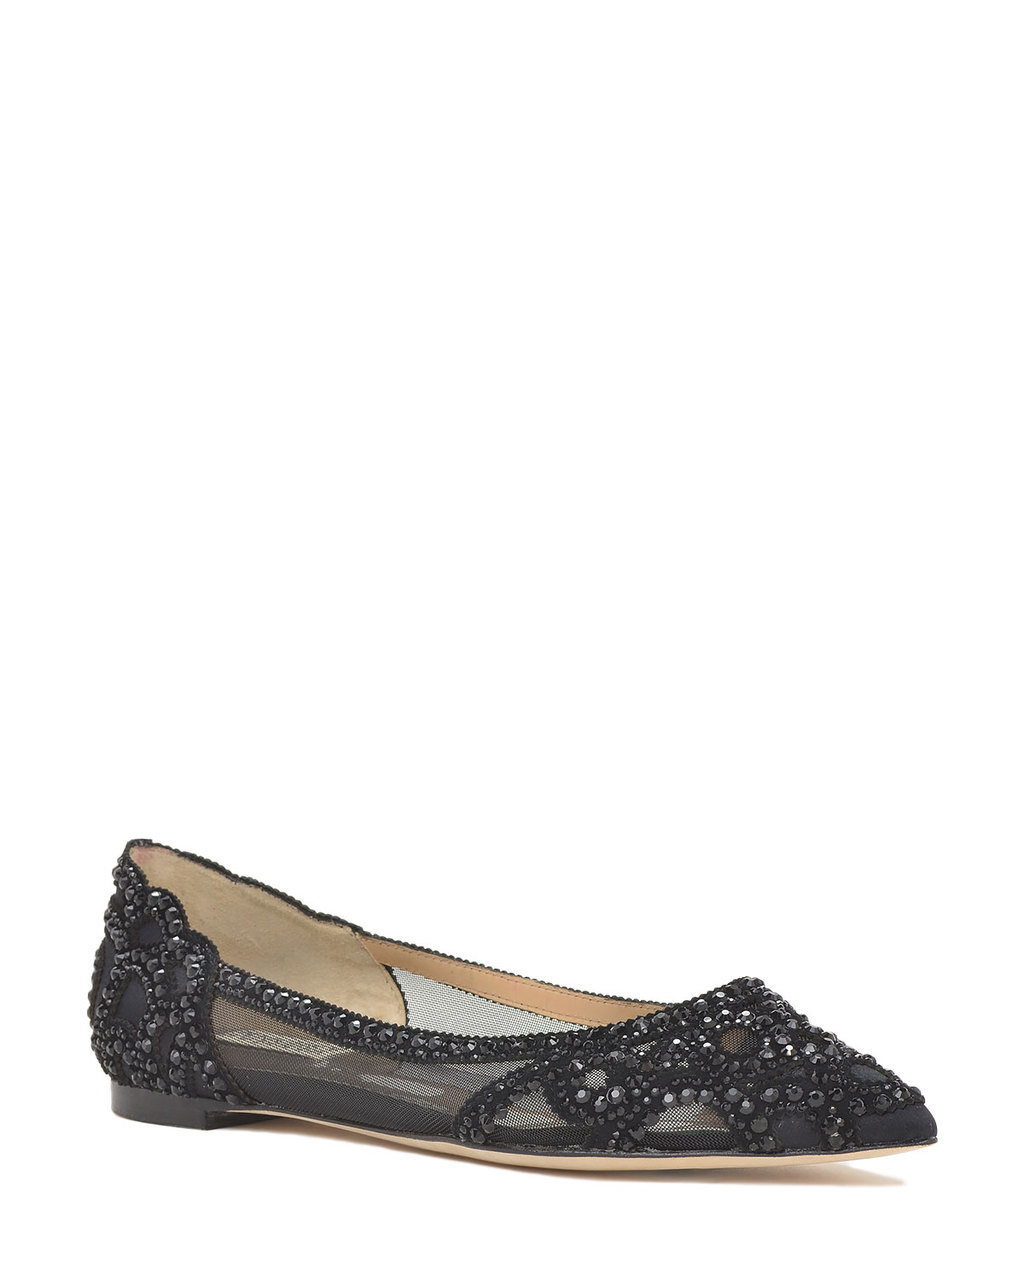 ab76e6c83566 Gigi Pointed Toe Flat Evening Shoe by Badgley Mischka